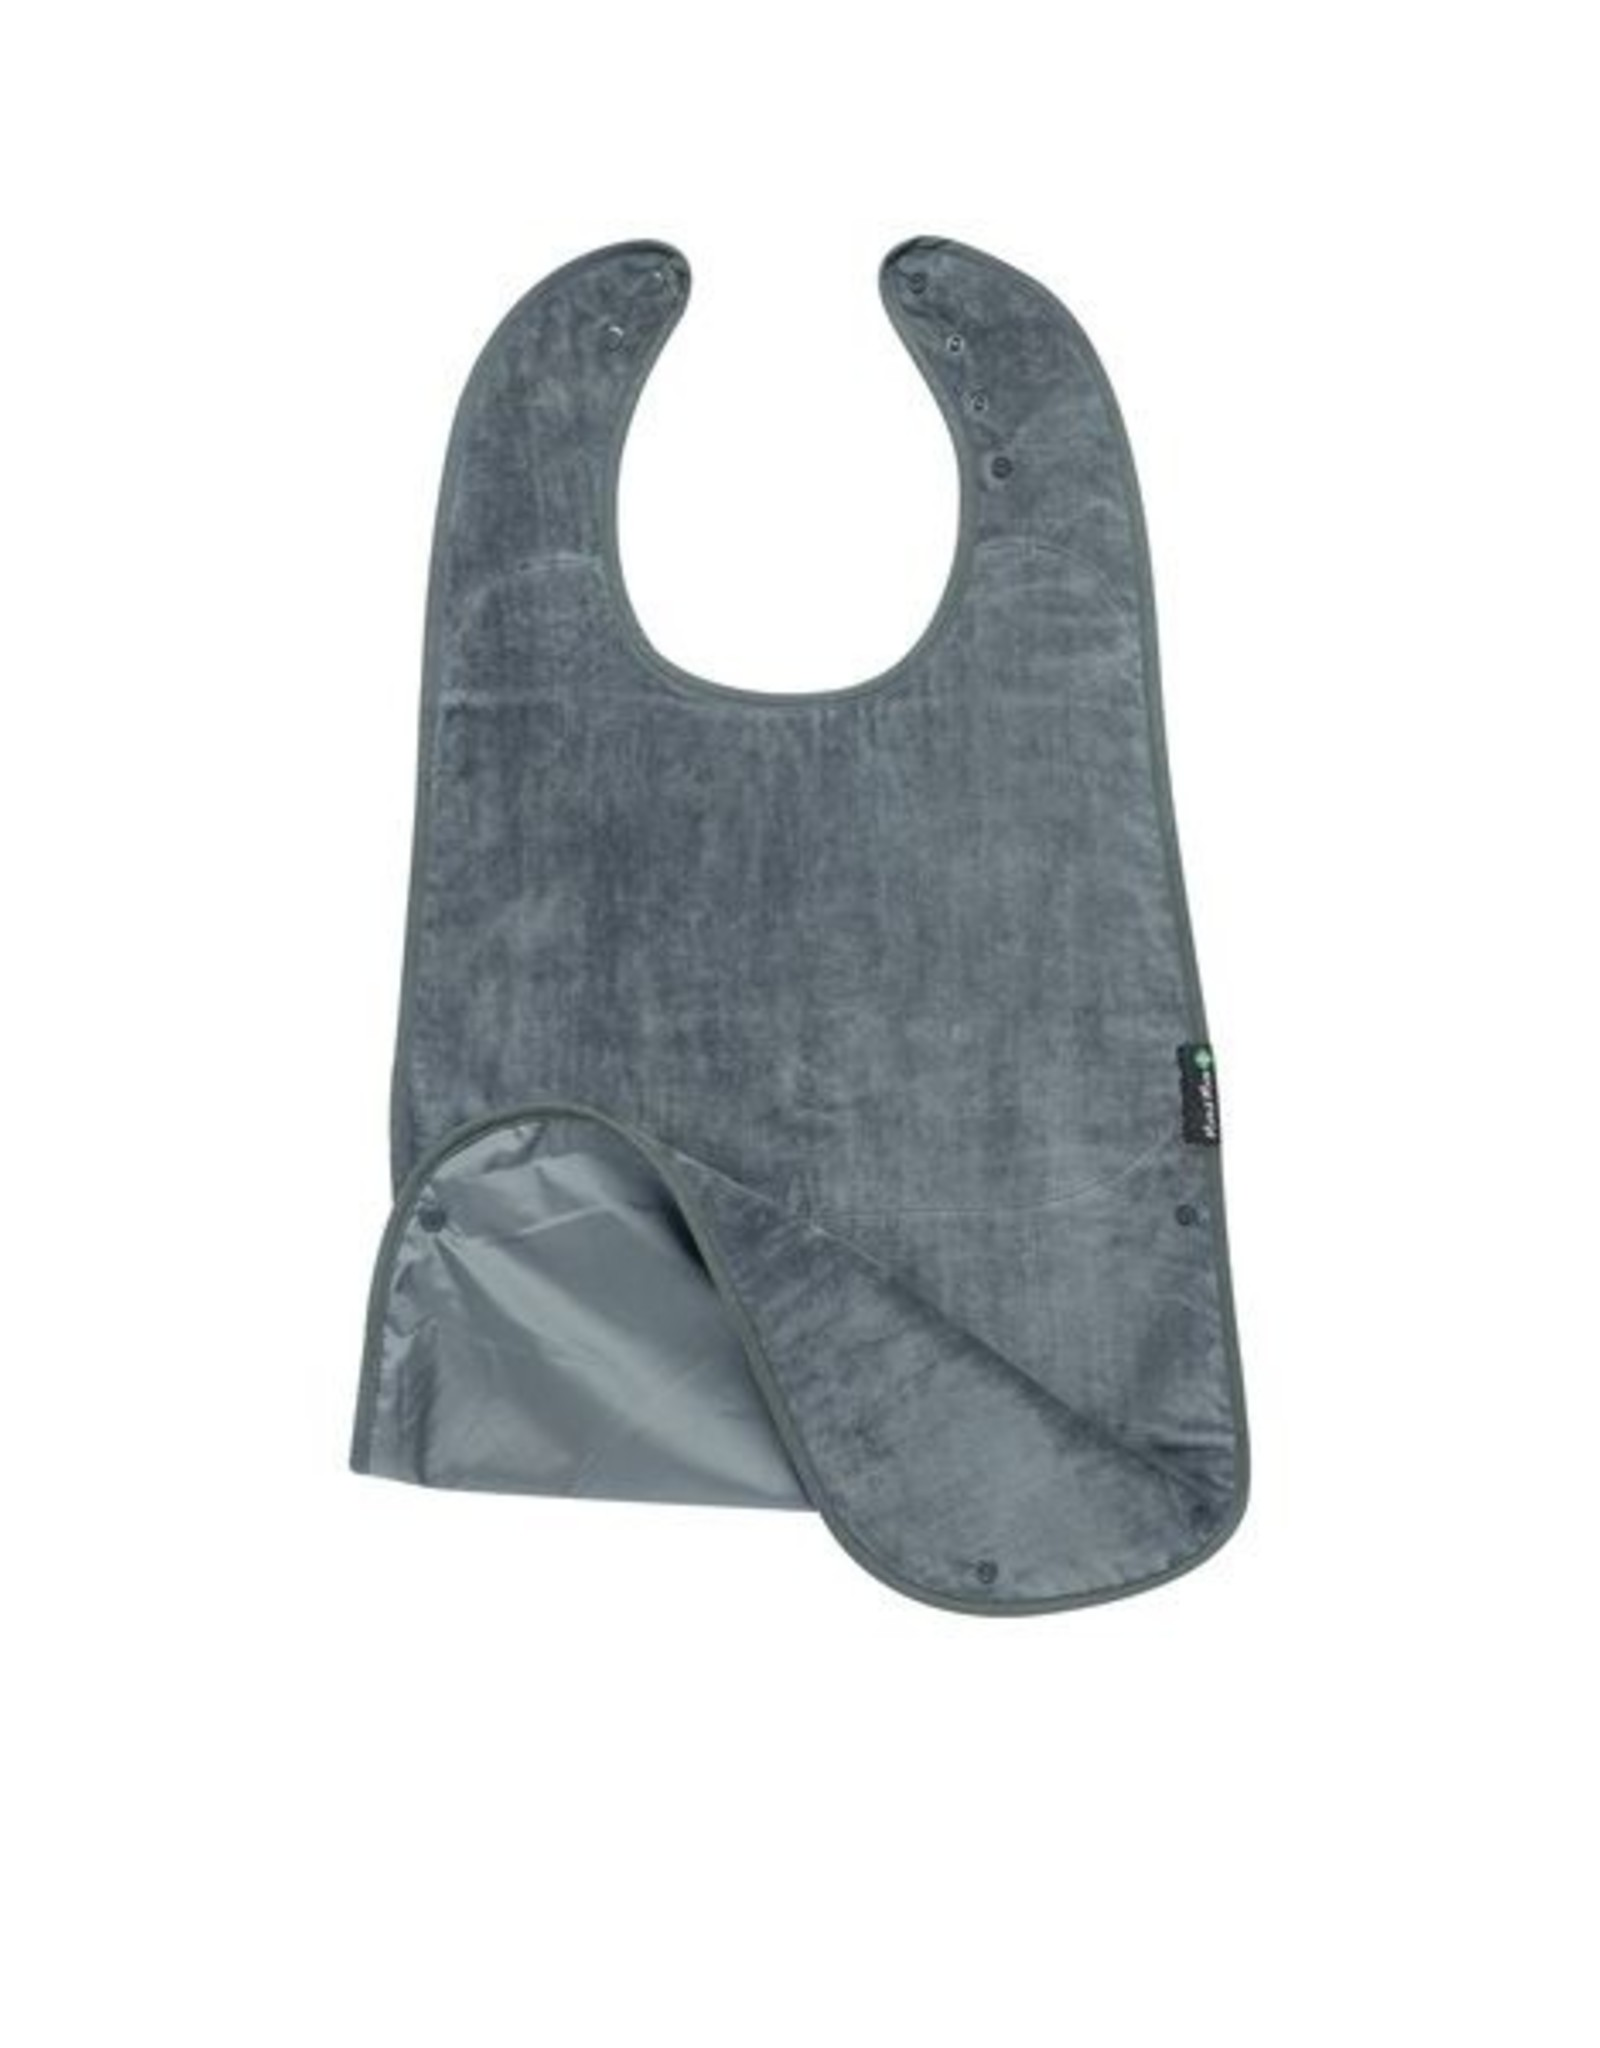 Mum2Mum Mum2Mum Plus Range Supersized Feeding Apron Grey